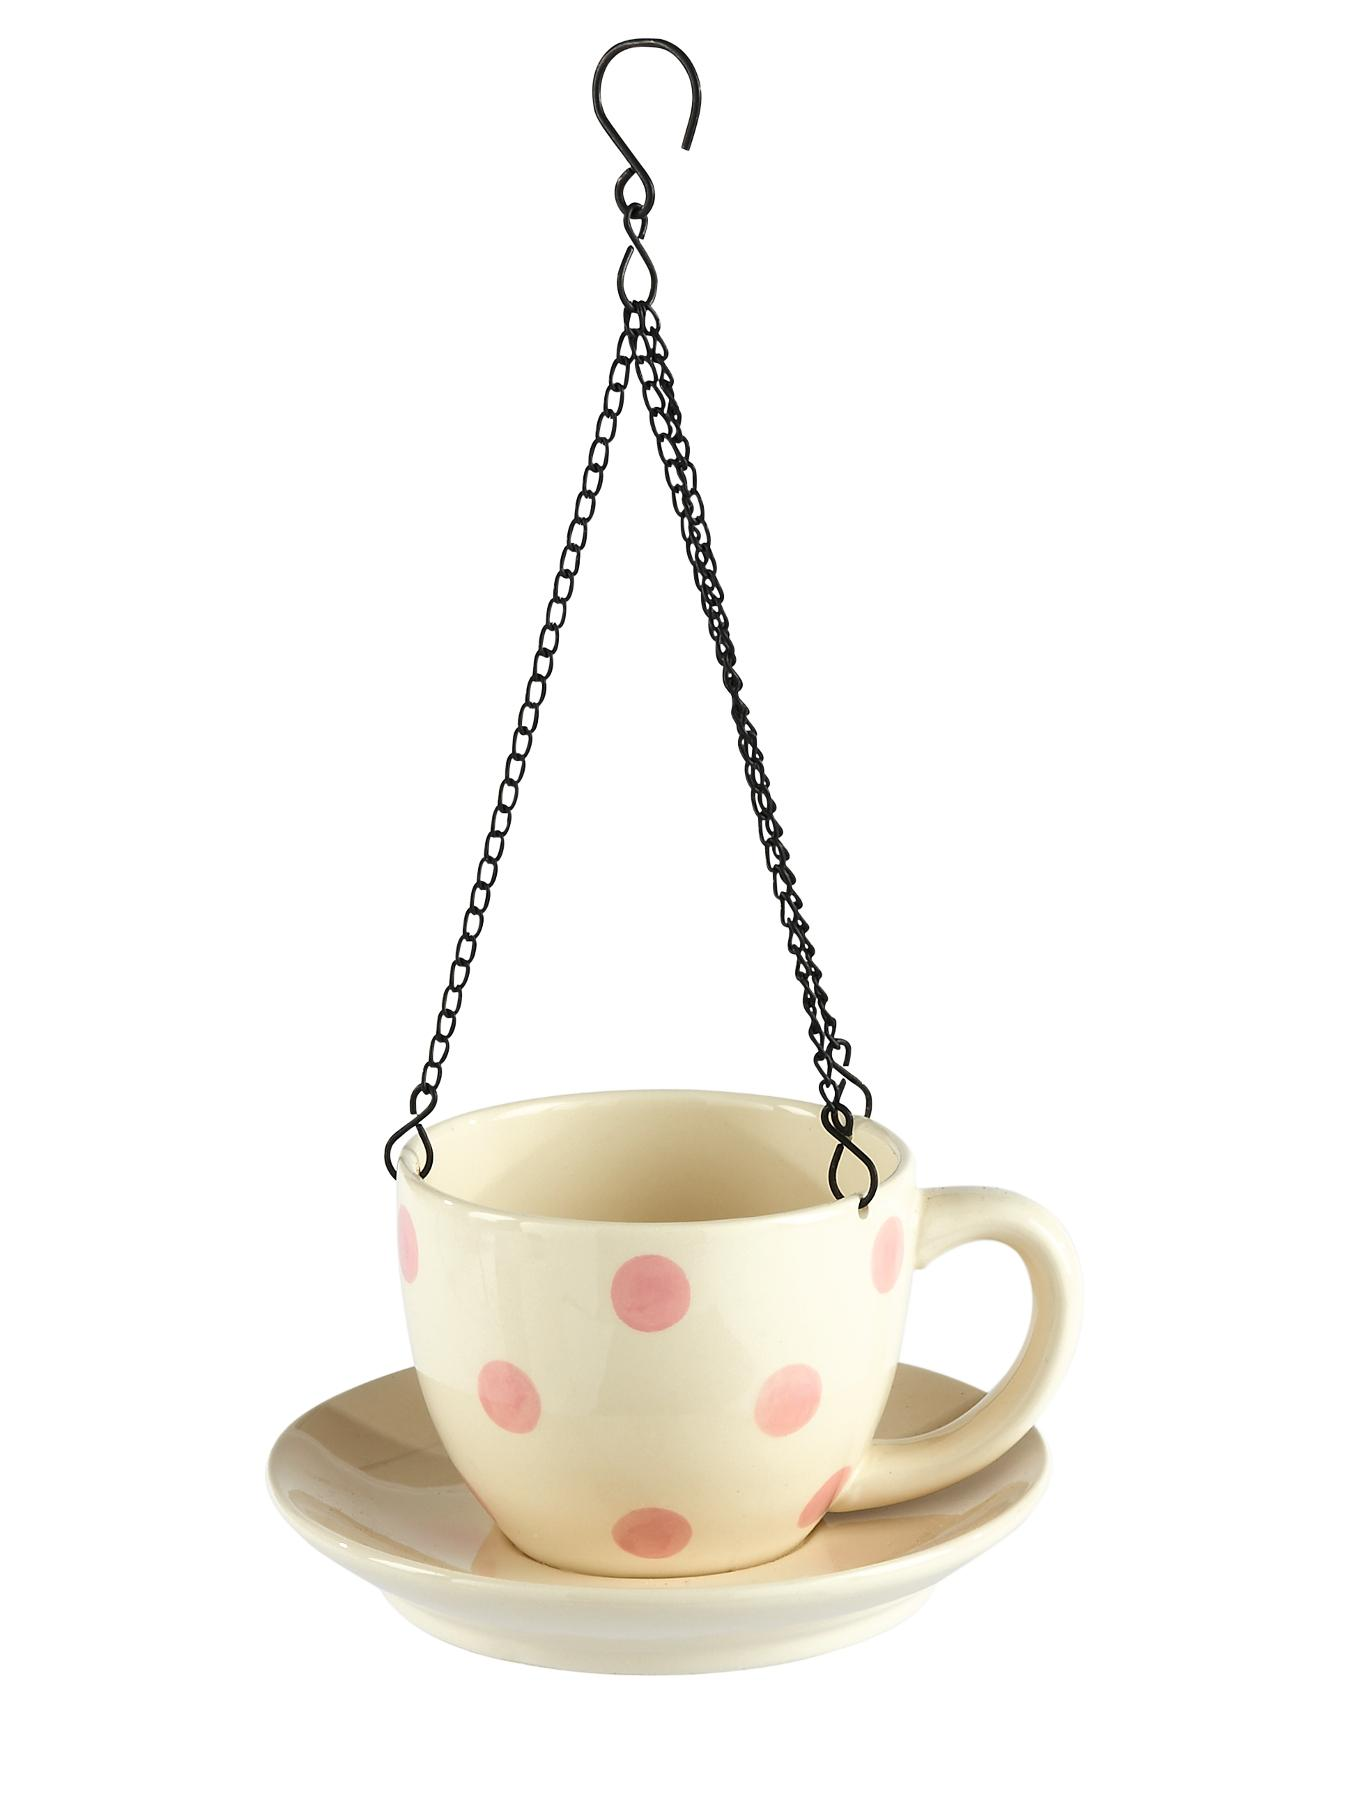 Ceramic Teacup Birdfeeder - Pink